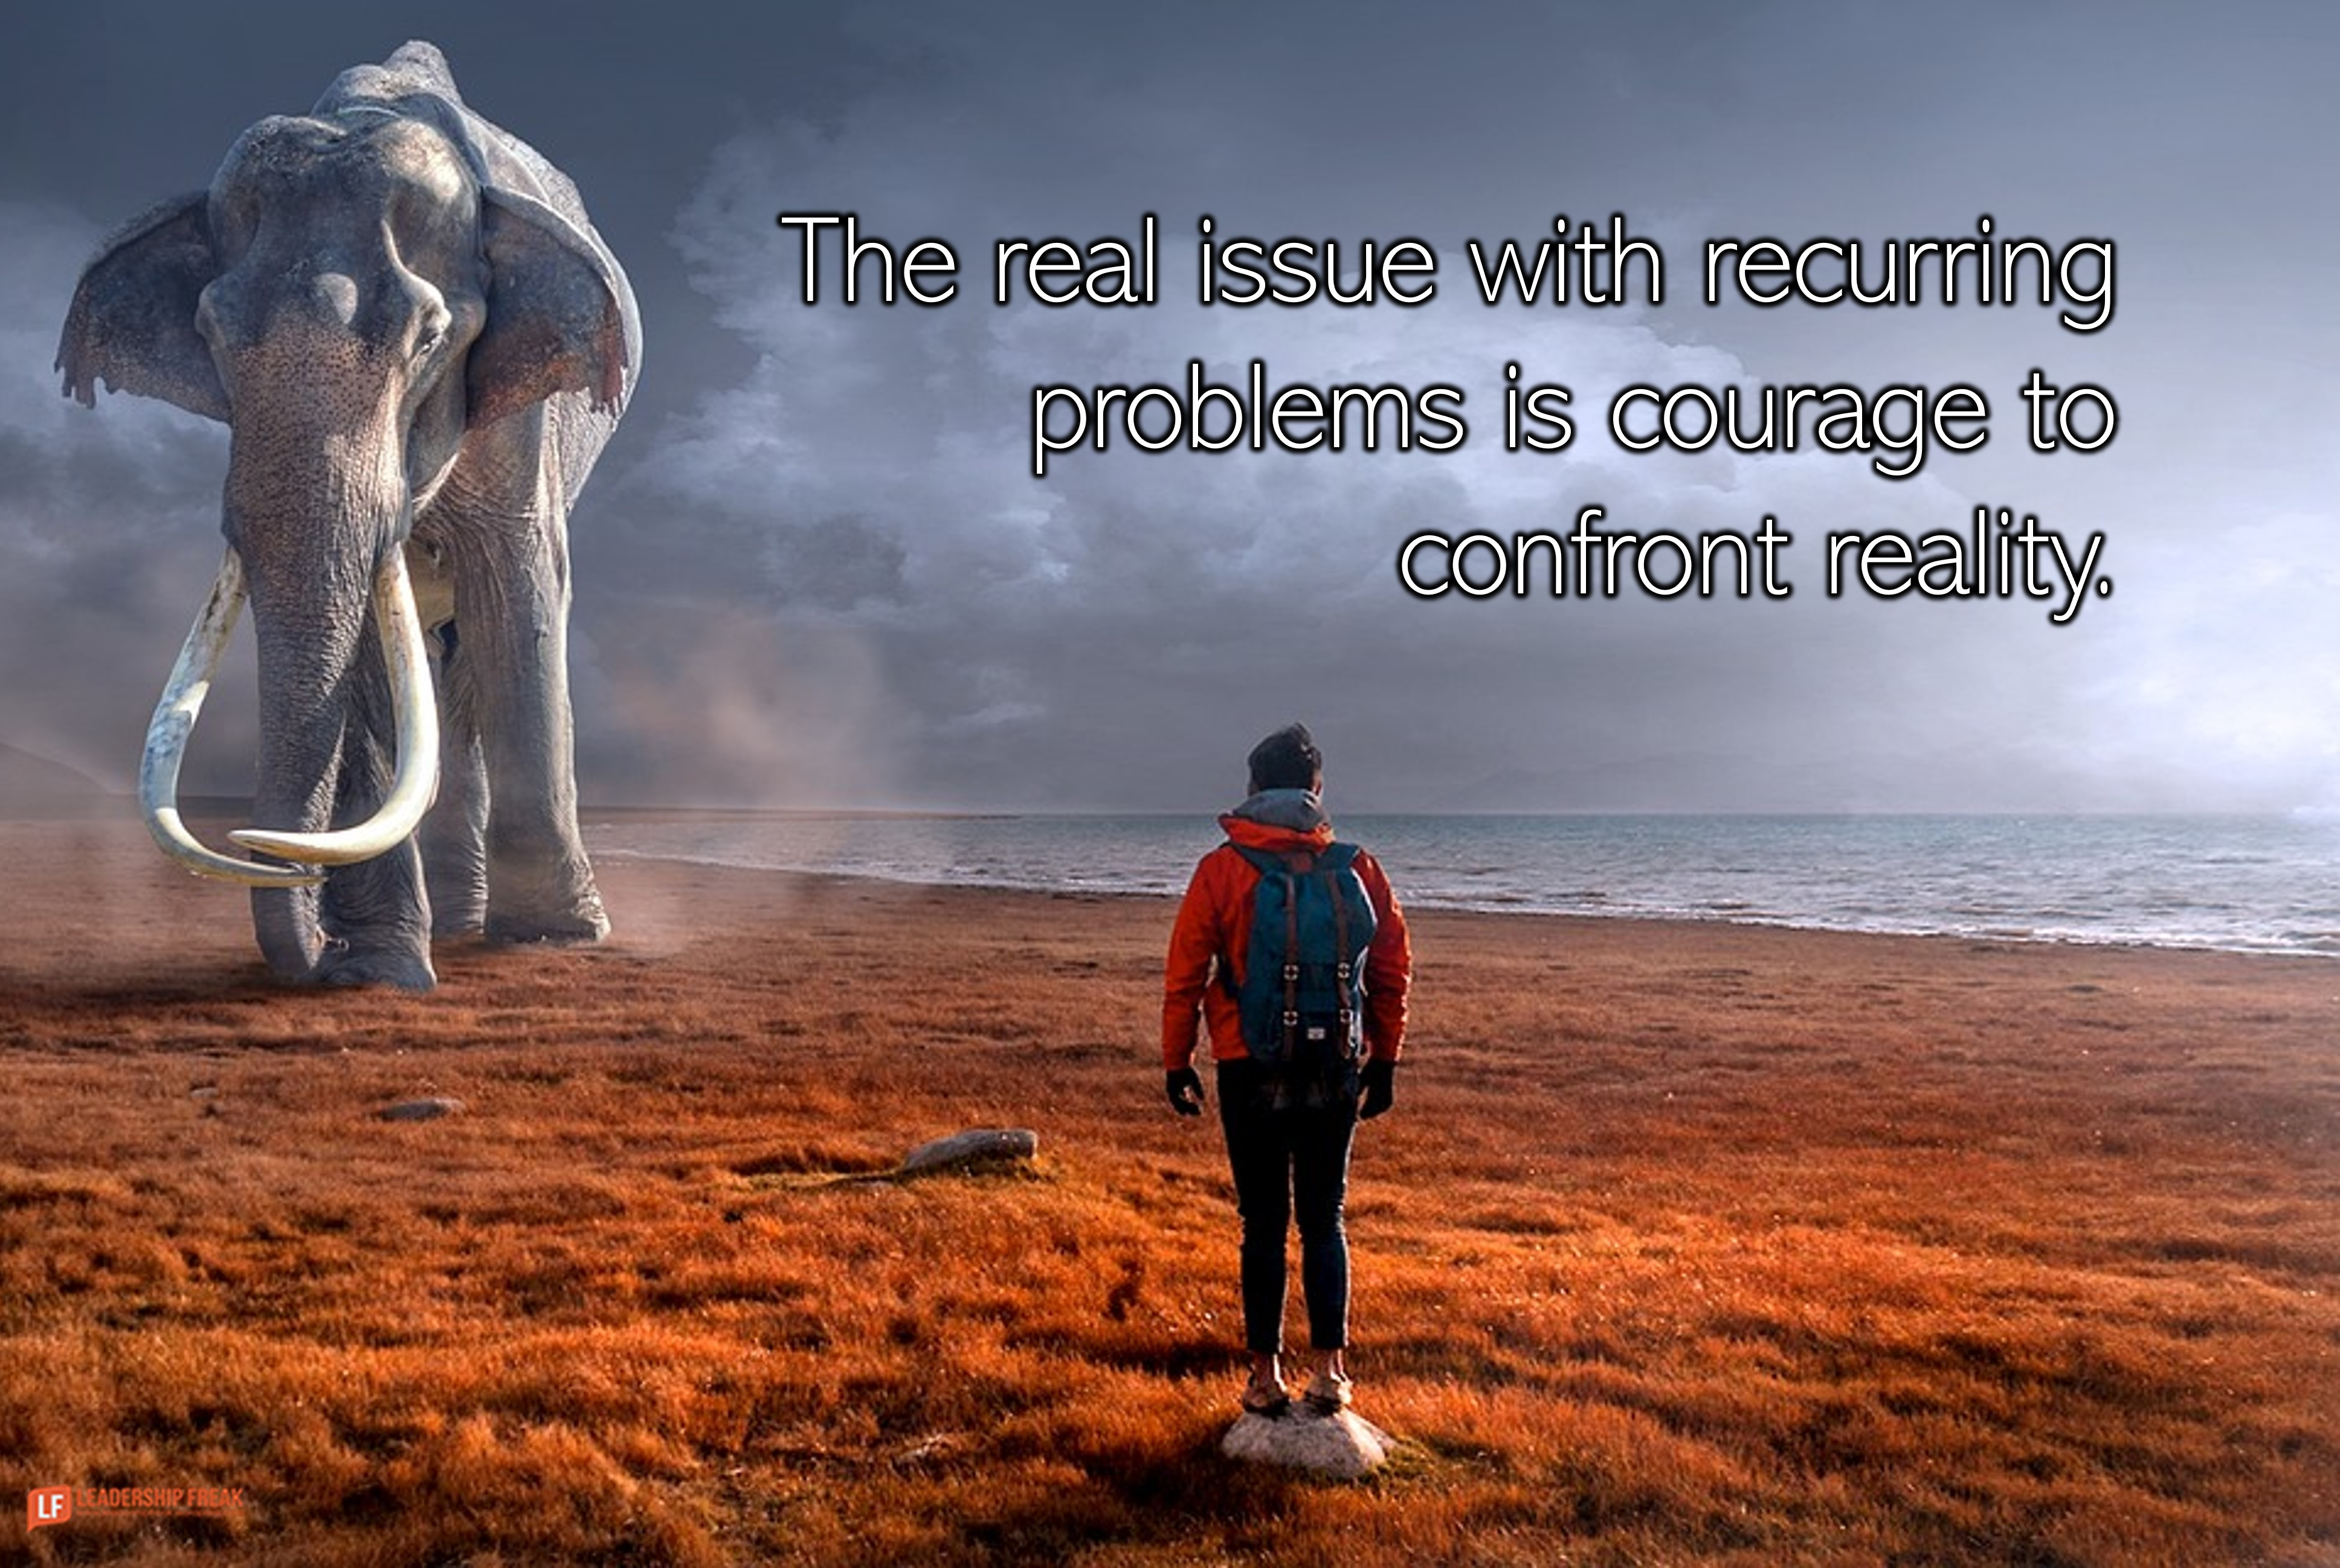 Man facing an elephant.  The real issue with recurring problems is courage to confront reality.